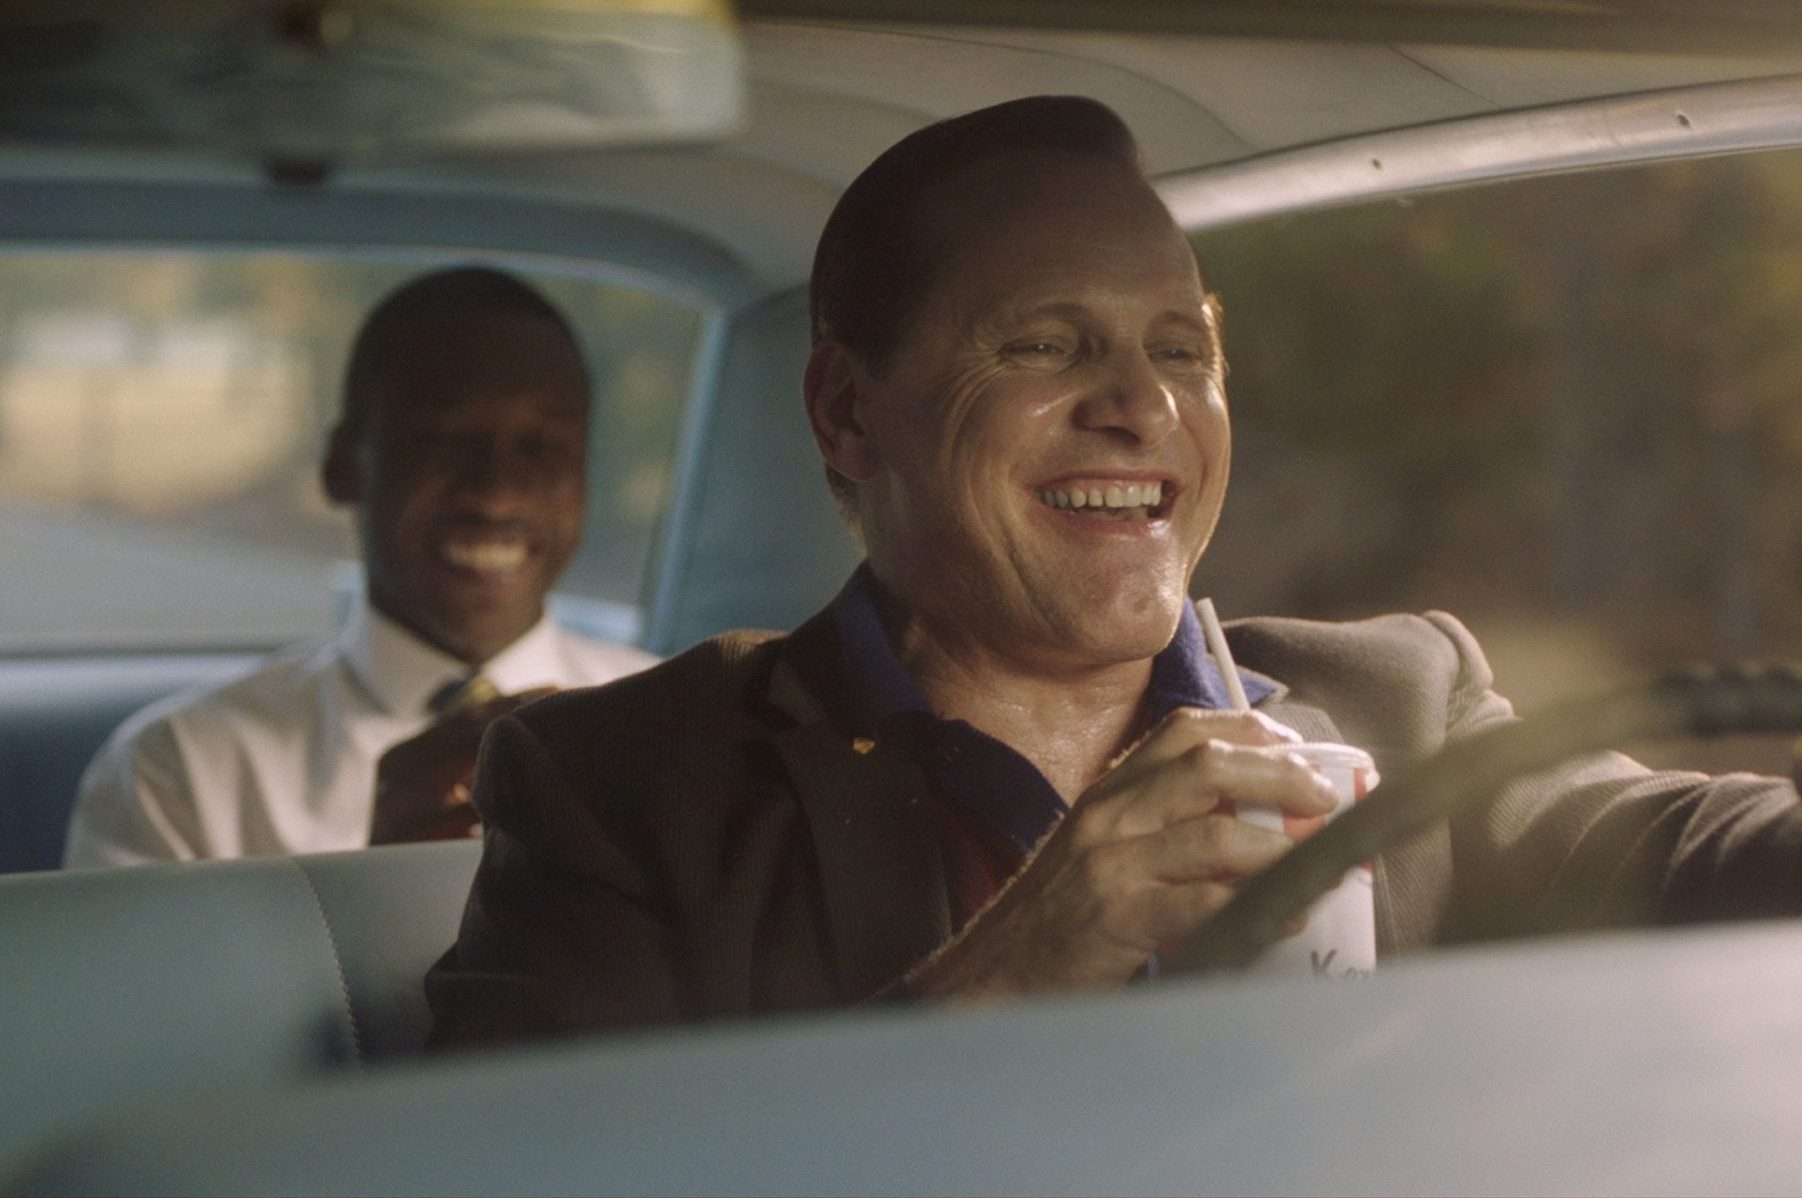 In an article about white savior films, a screenshot from the movie Green Book